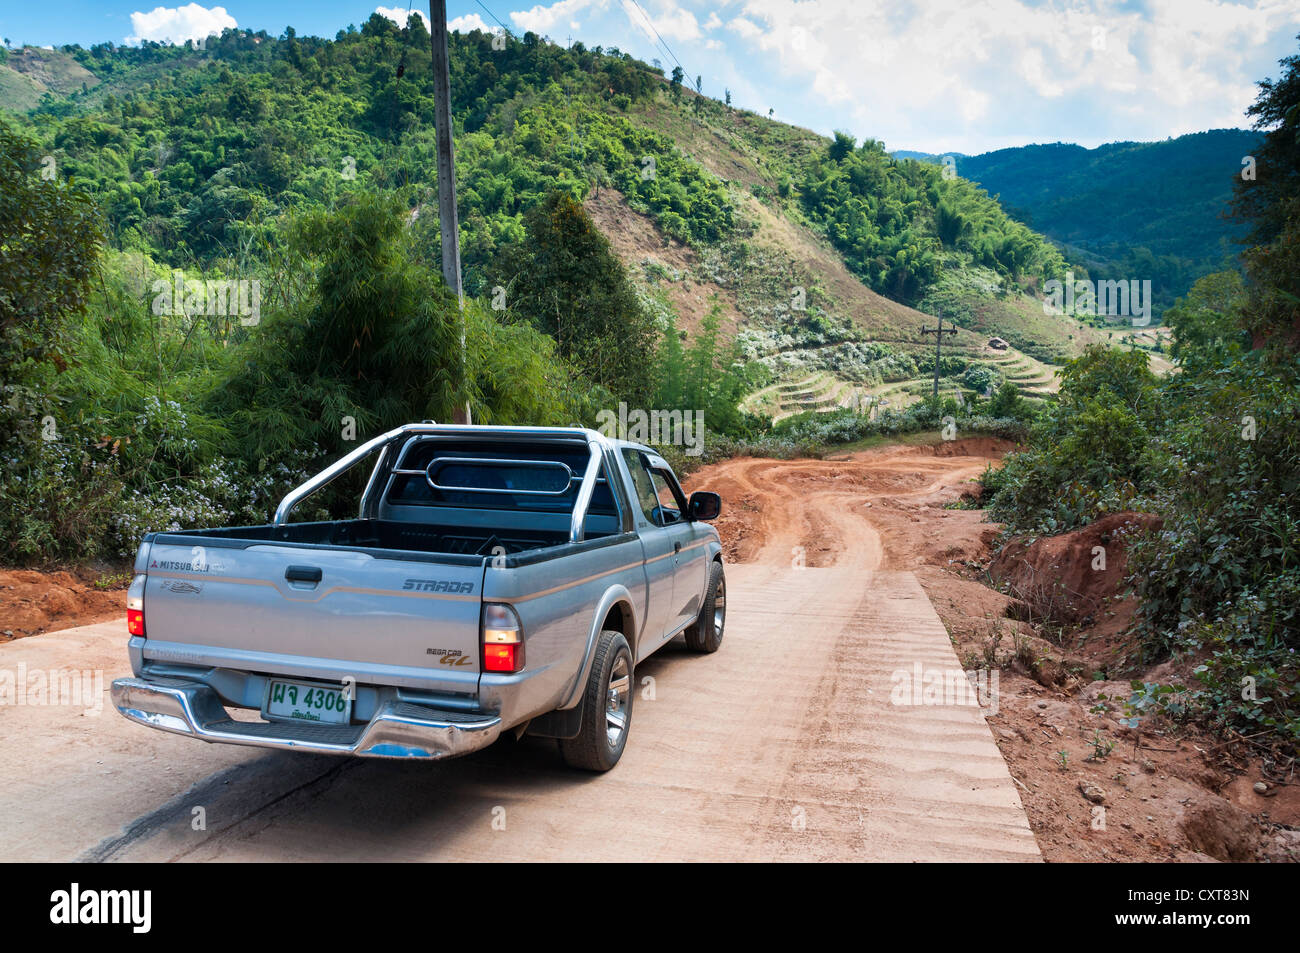 SUV or pick-up truck at the end of a paved road, dirt road, Northern Thailand, Thailand, Asia - Stock Image